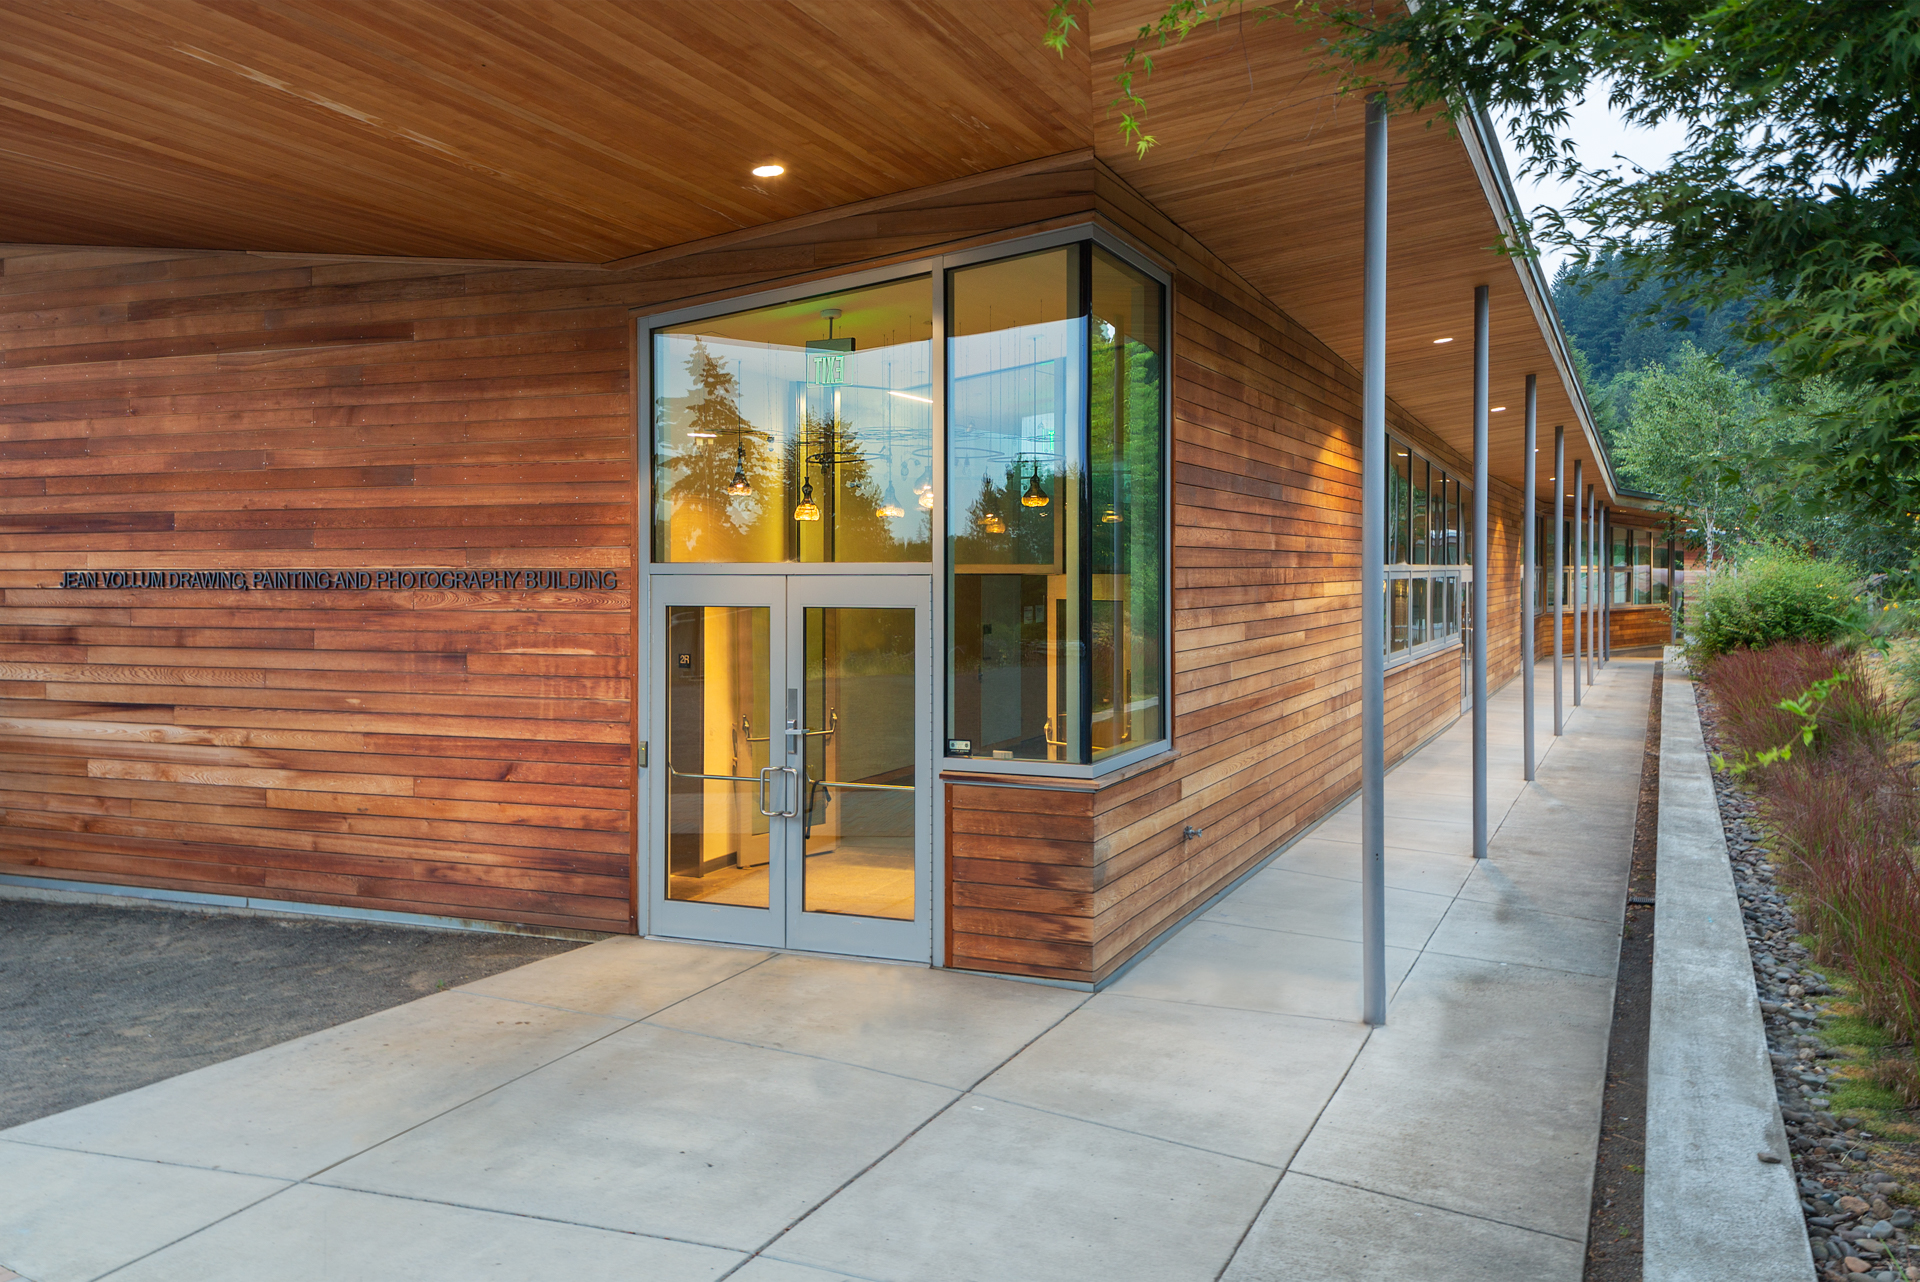 Oregon School of Arts & Crafts expanded campus. Designed by architect  John Storrs  in 1978.  Photographed by Joshua James Huff August 2018